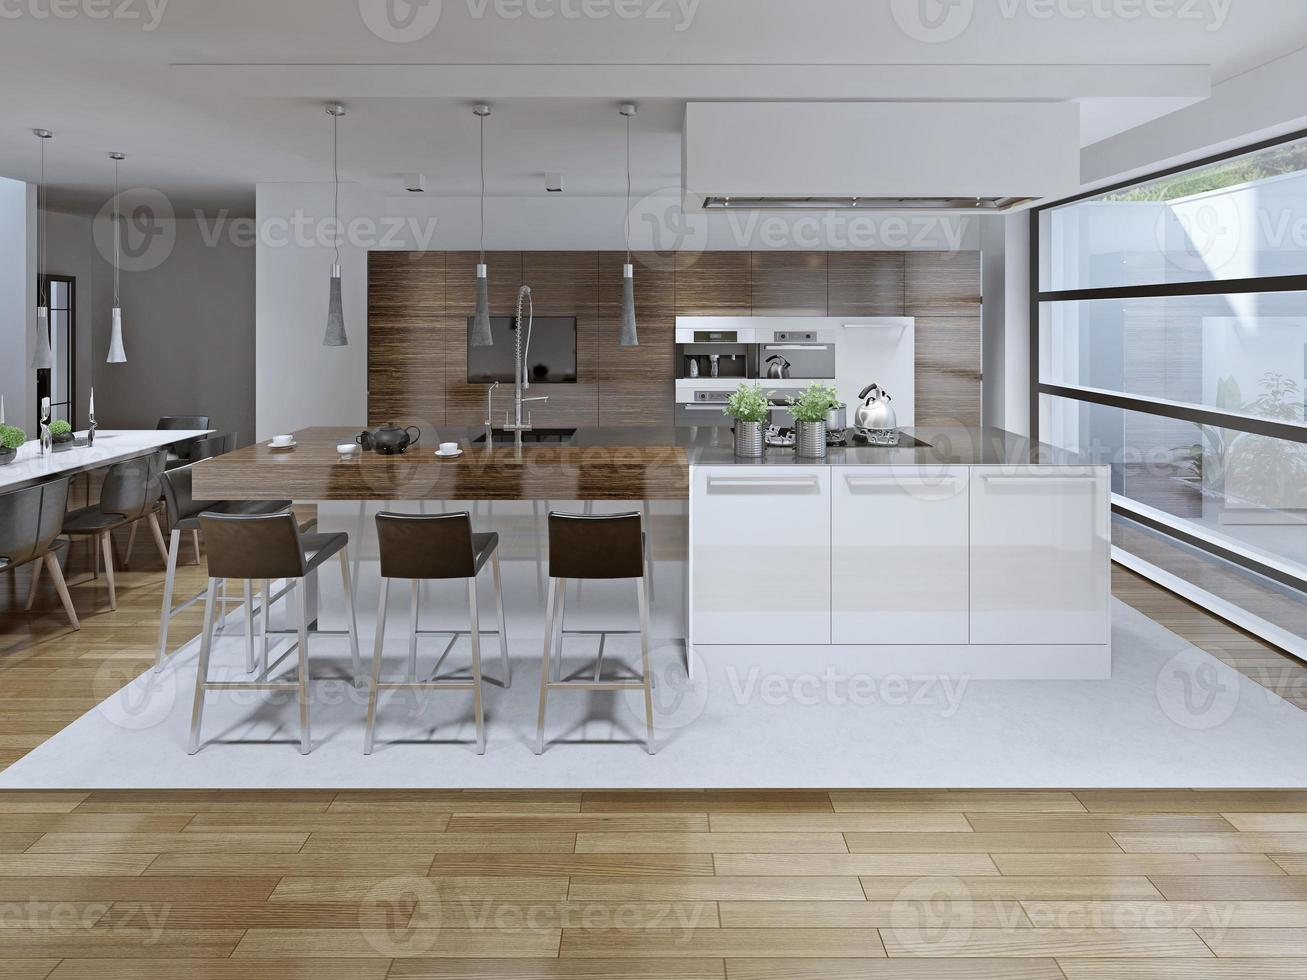 Interior View Of Luxury Kitchen And Dining Room photo